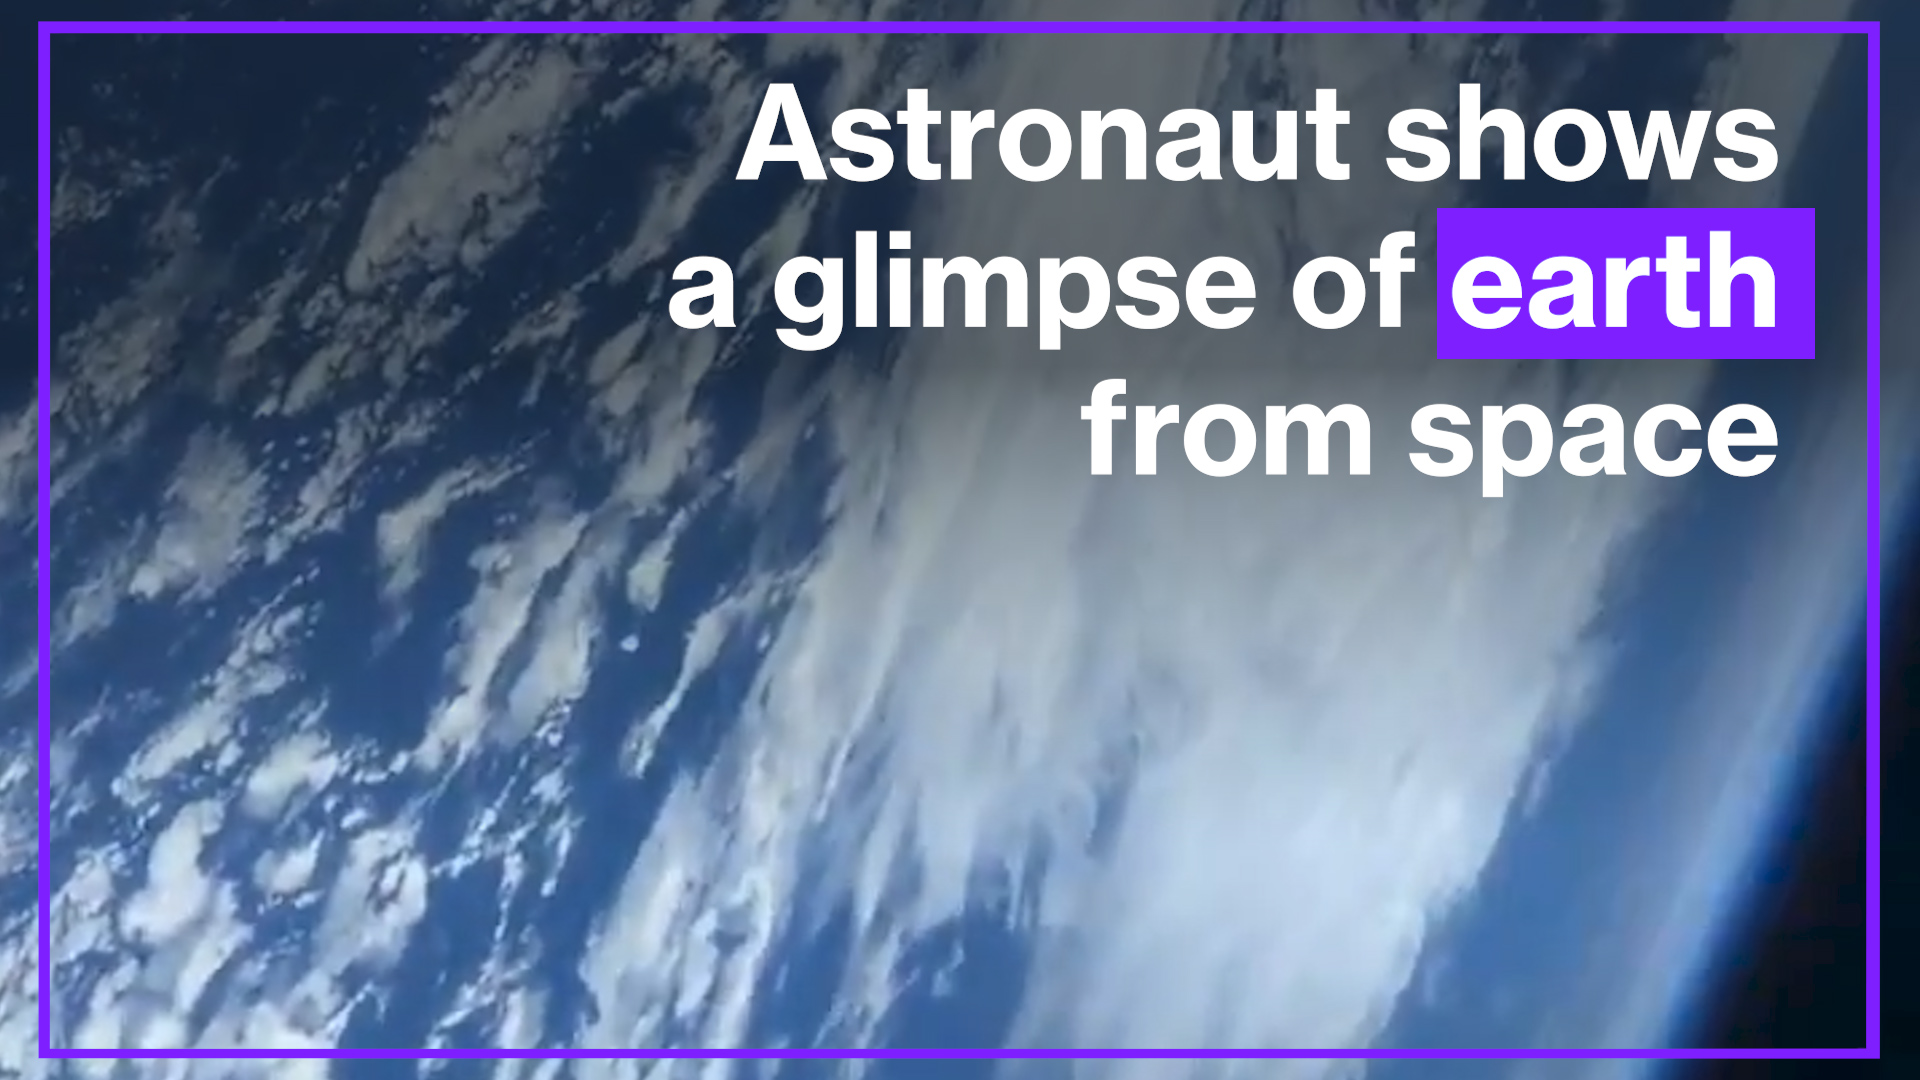 uk.news.yahoo.com: Astronaut shows glimpse of earth From space